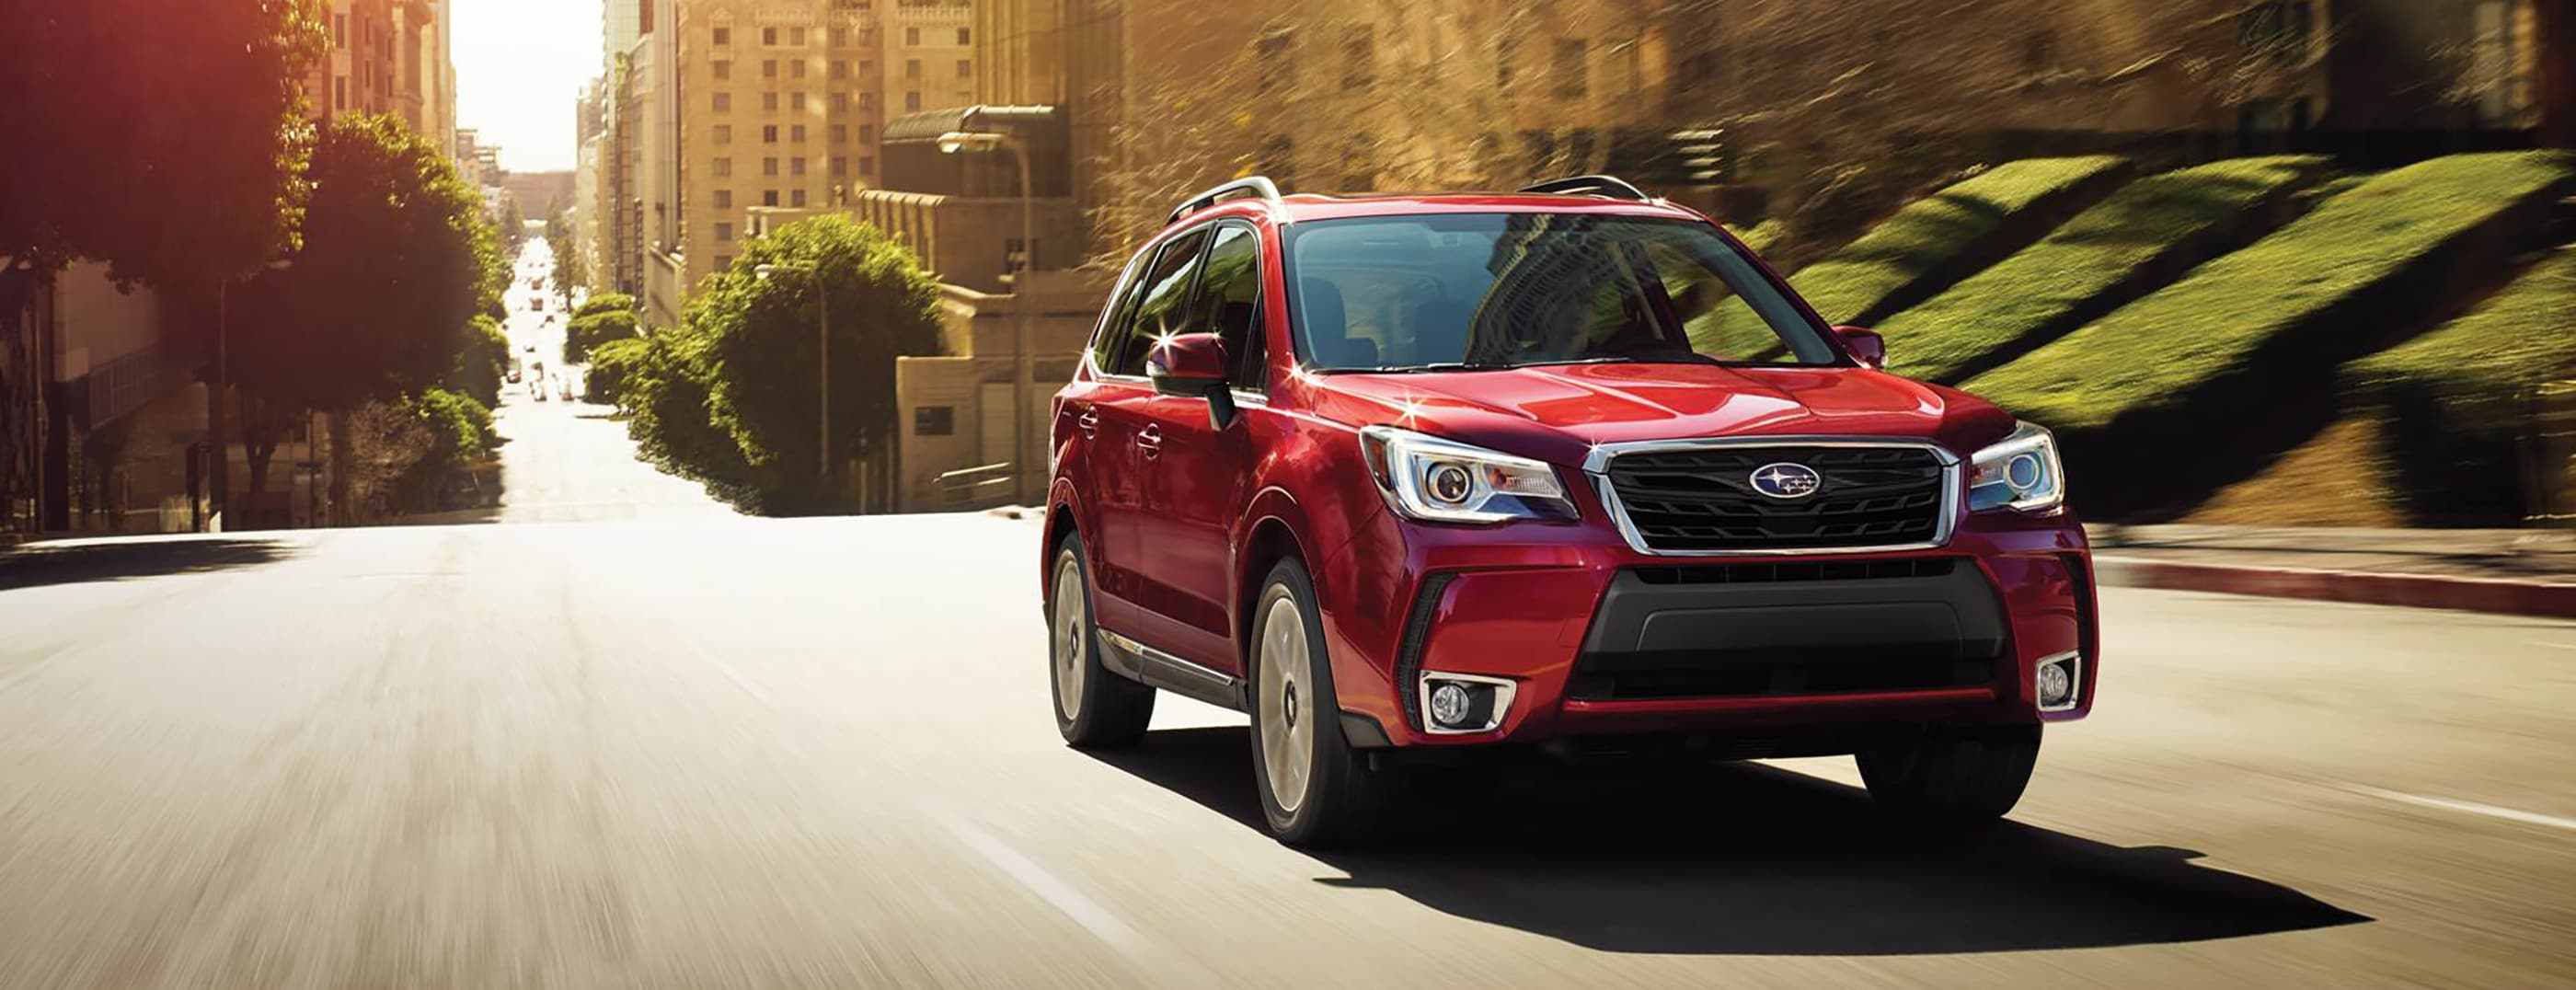 Difference Between 2018 Subaru Forester Vs Ford Escape Specs Fuel Filter Location Exterior